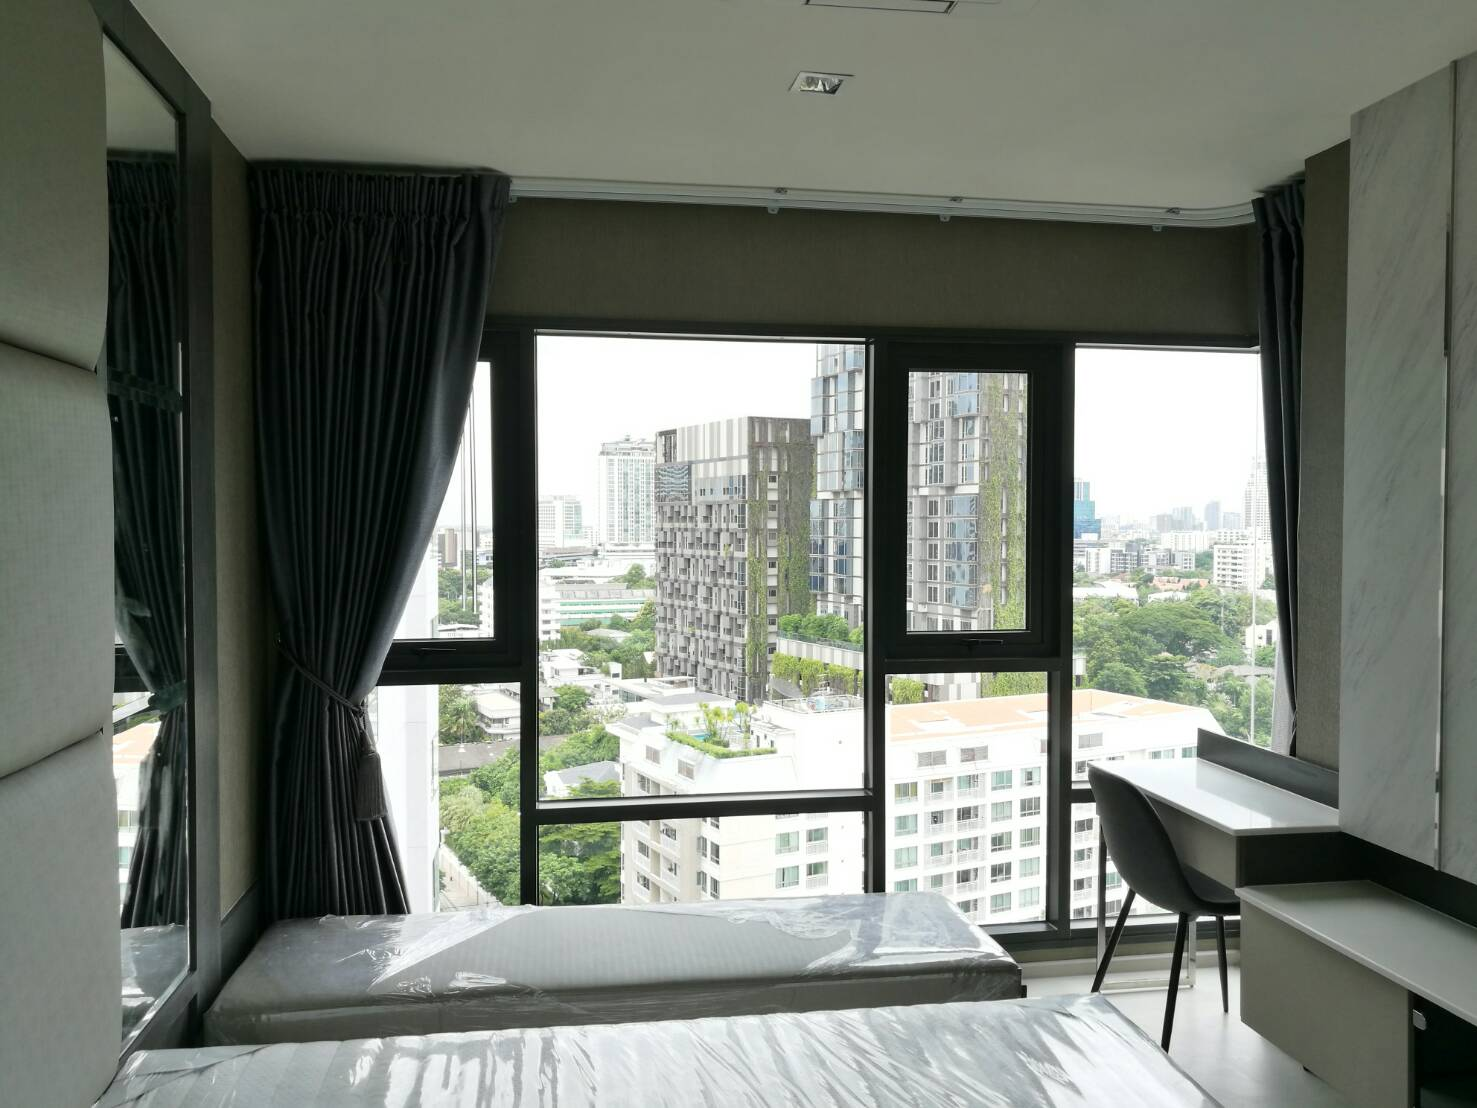 For SaleCondoSukhumvit, Asoke, Thonglor : Condo for sale RHYTHM Sukhumvit 36-38 size 58.4 sqm 2bed2bath 14th fl. BTS Thonglor